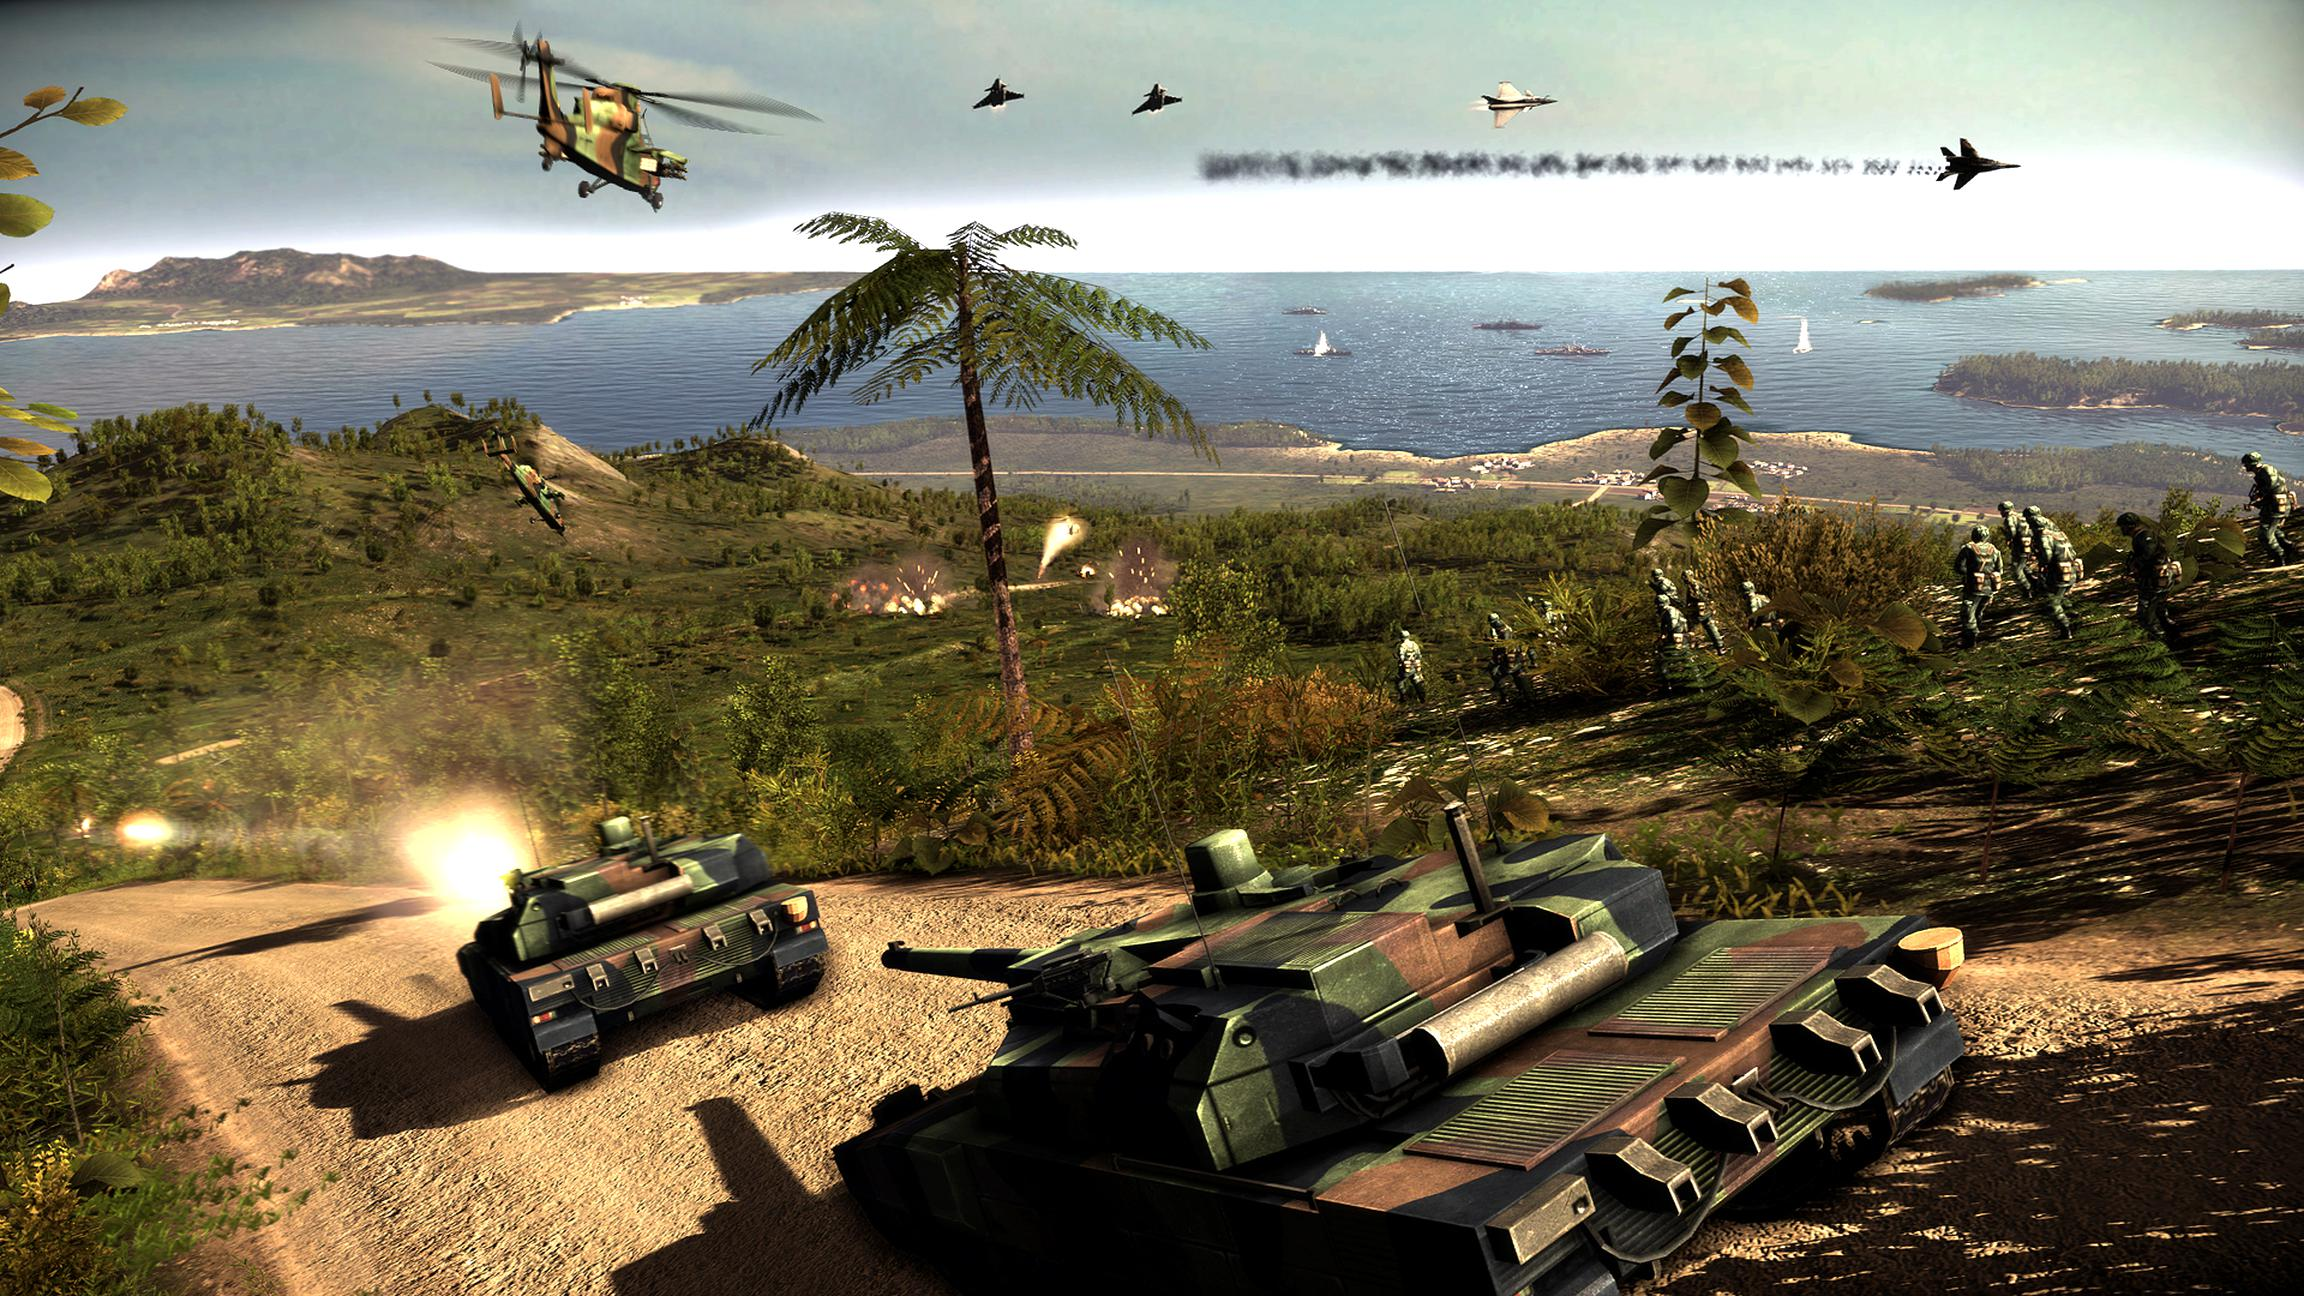 wargame d'occasion